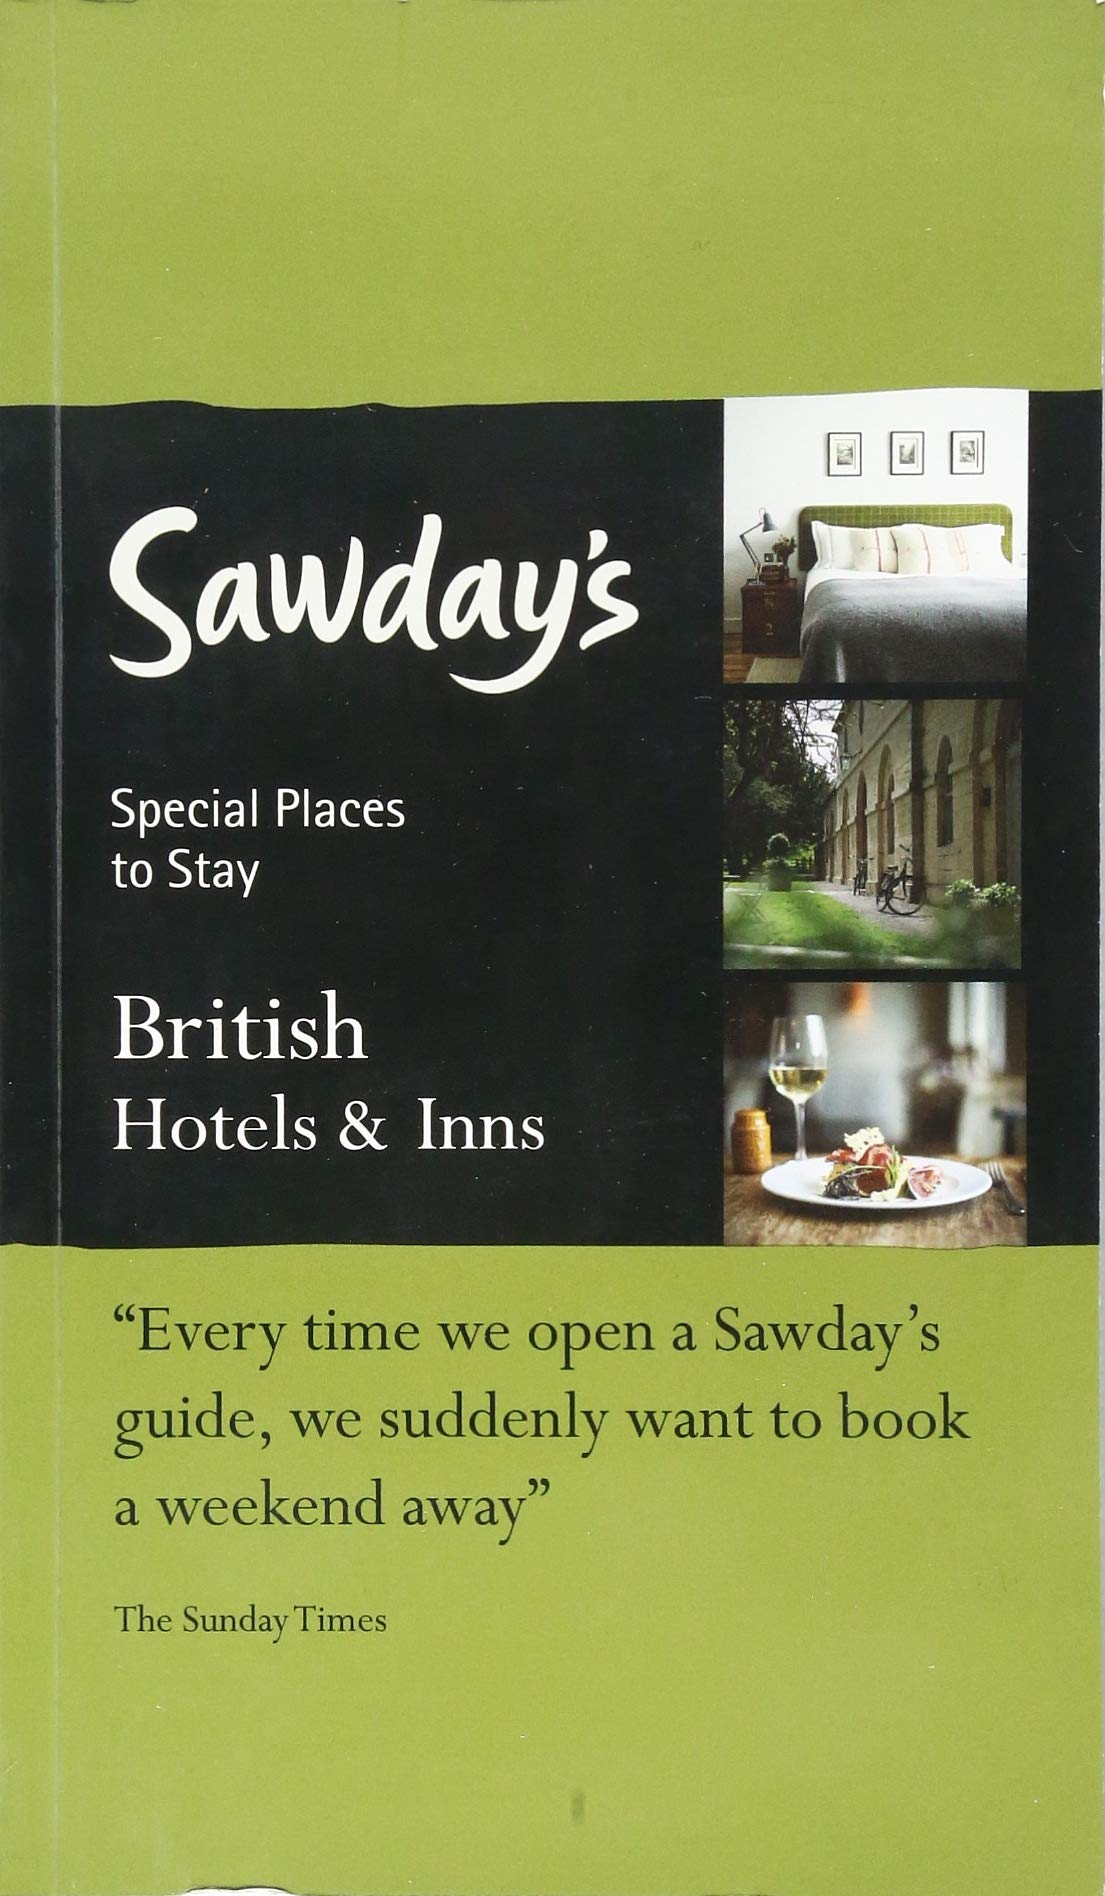 British bed and breakfast (alastair sawday's special places to.